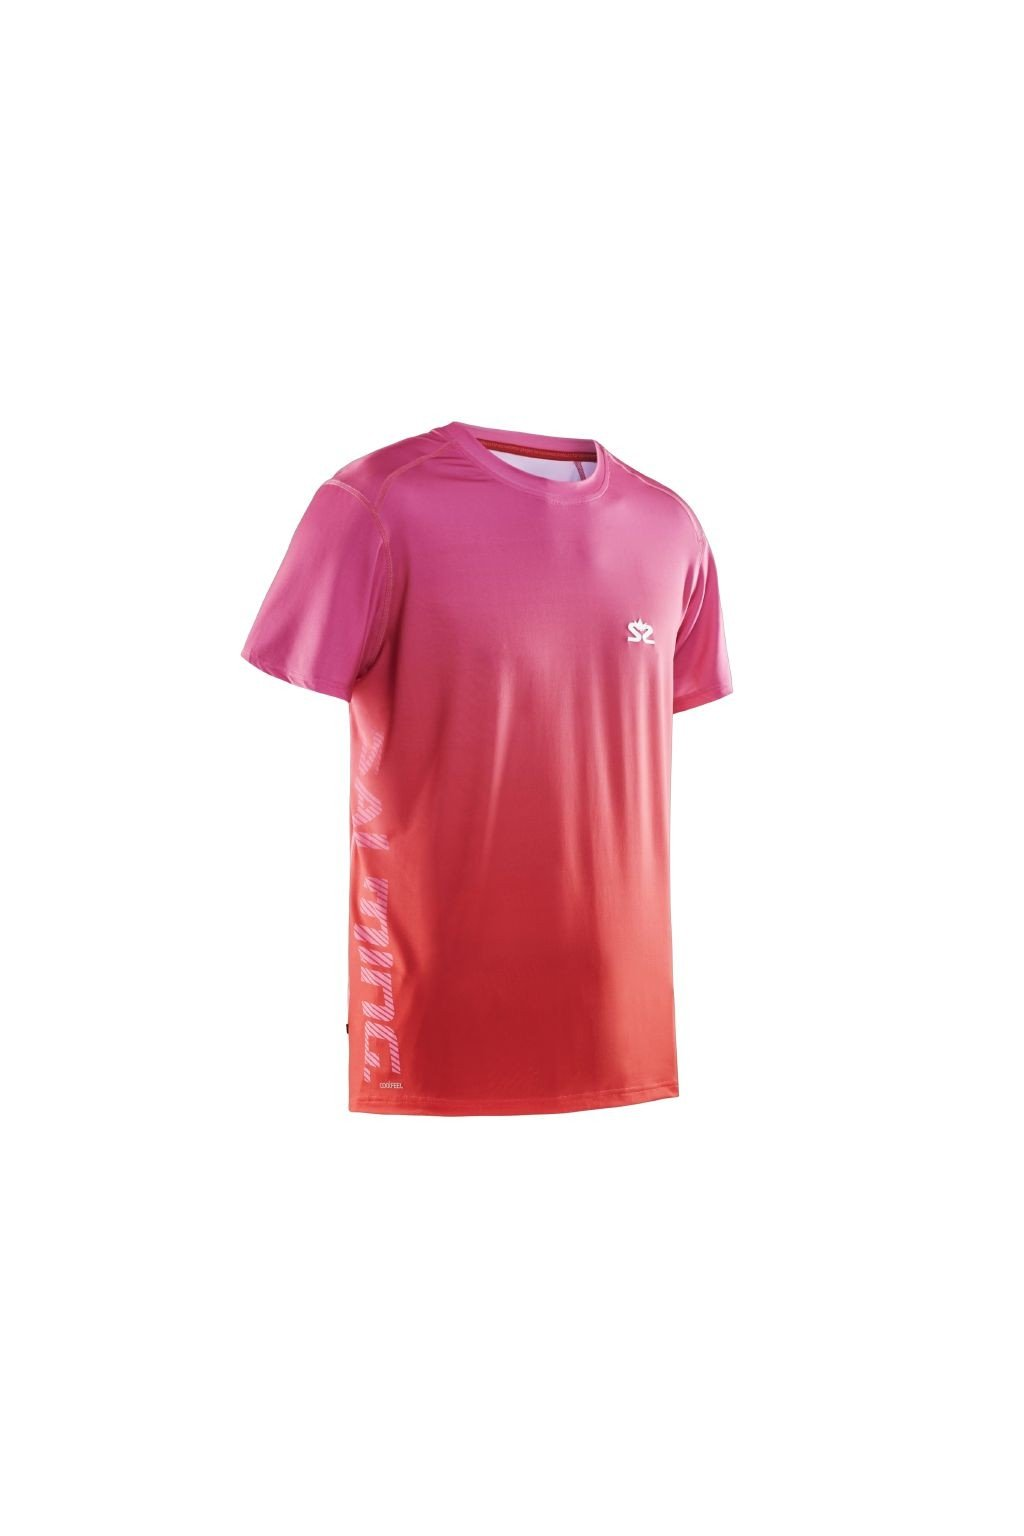 salming beam tee pink red xl